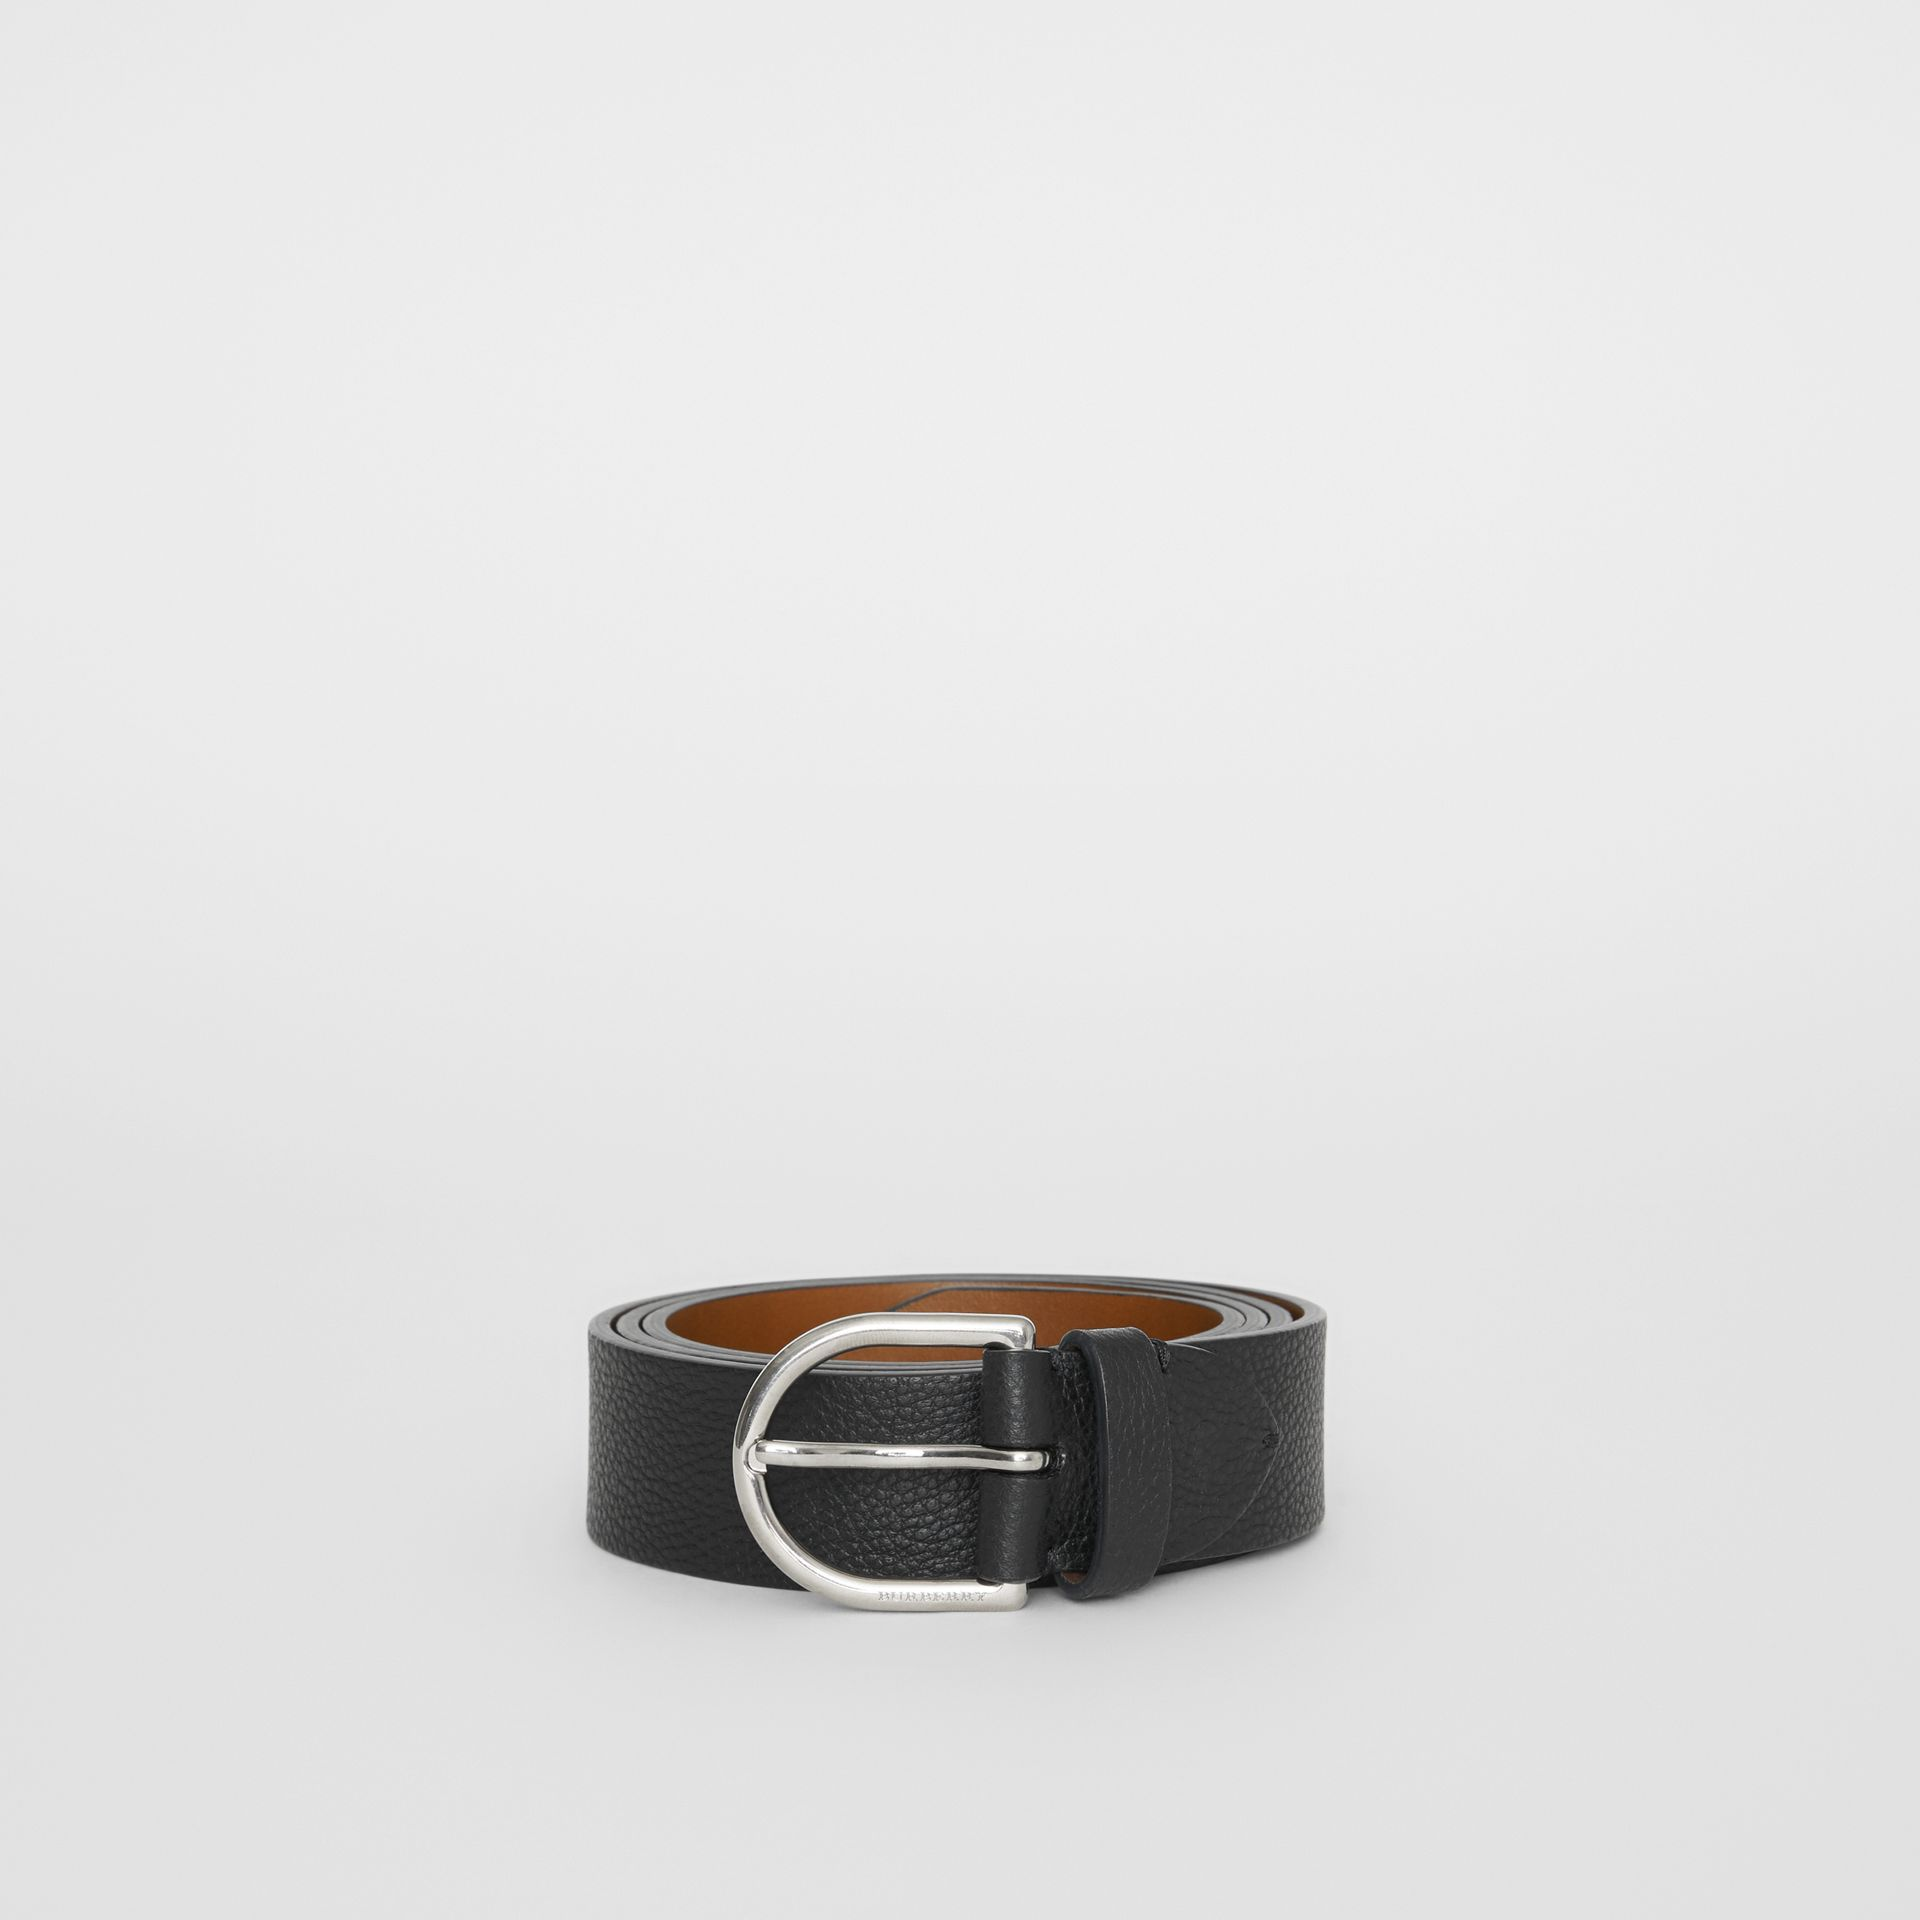 D-shaped Buckle Grainy Leather Belt in Black - Men | Burberry Canada - gallery image 3